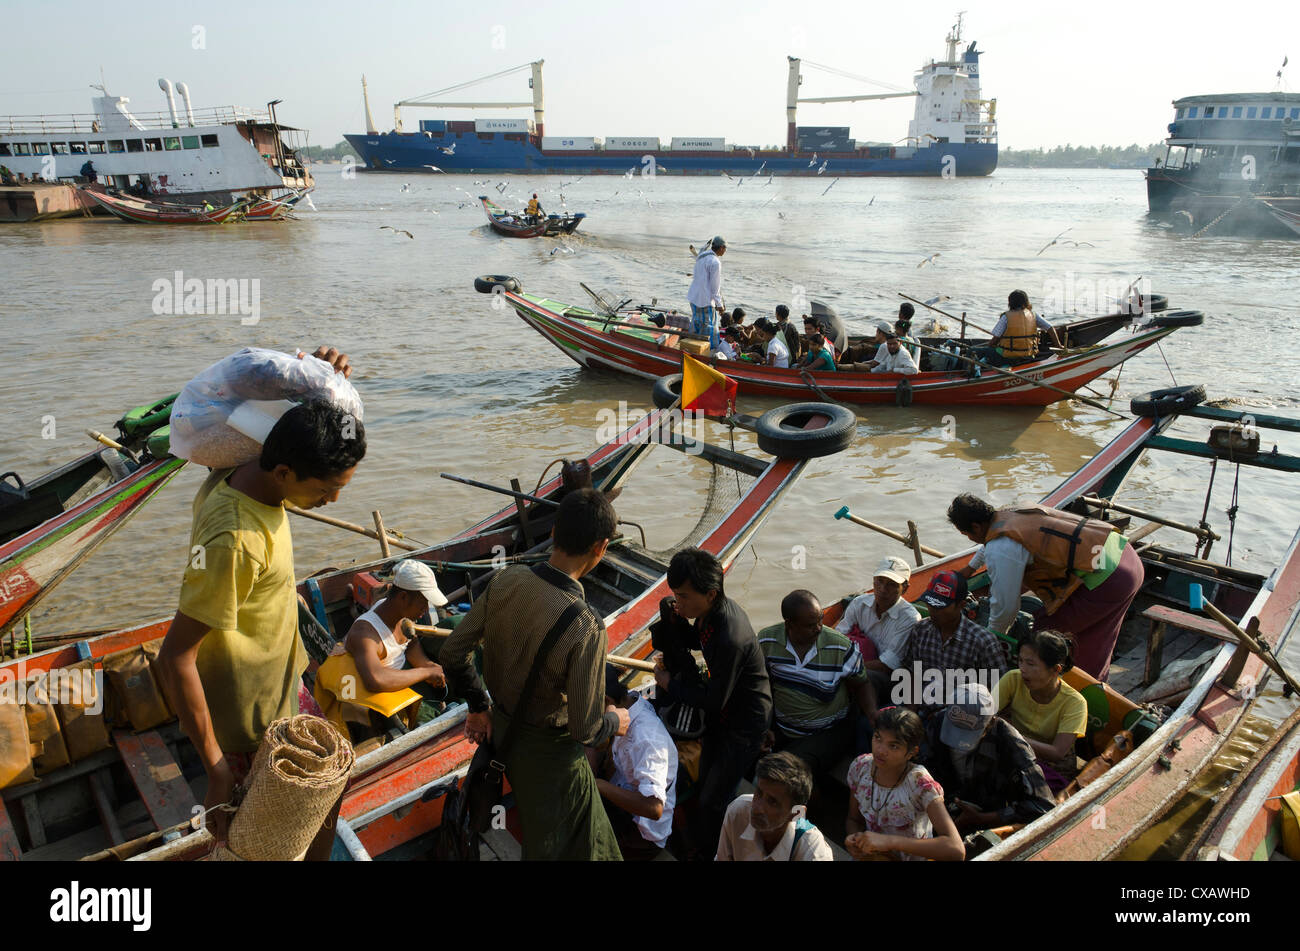 Passengers embarking on a small ferry boat across the river. Yangon harbour, Myanmar (Burma), Asia - Stock Image